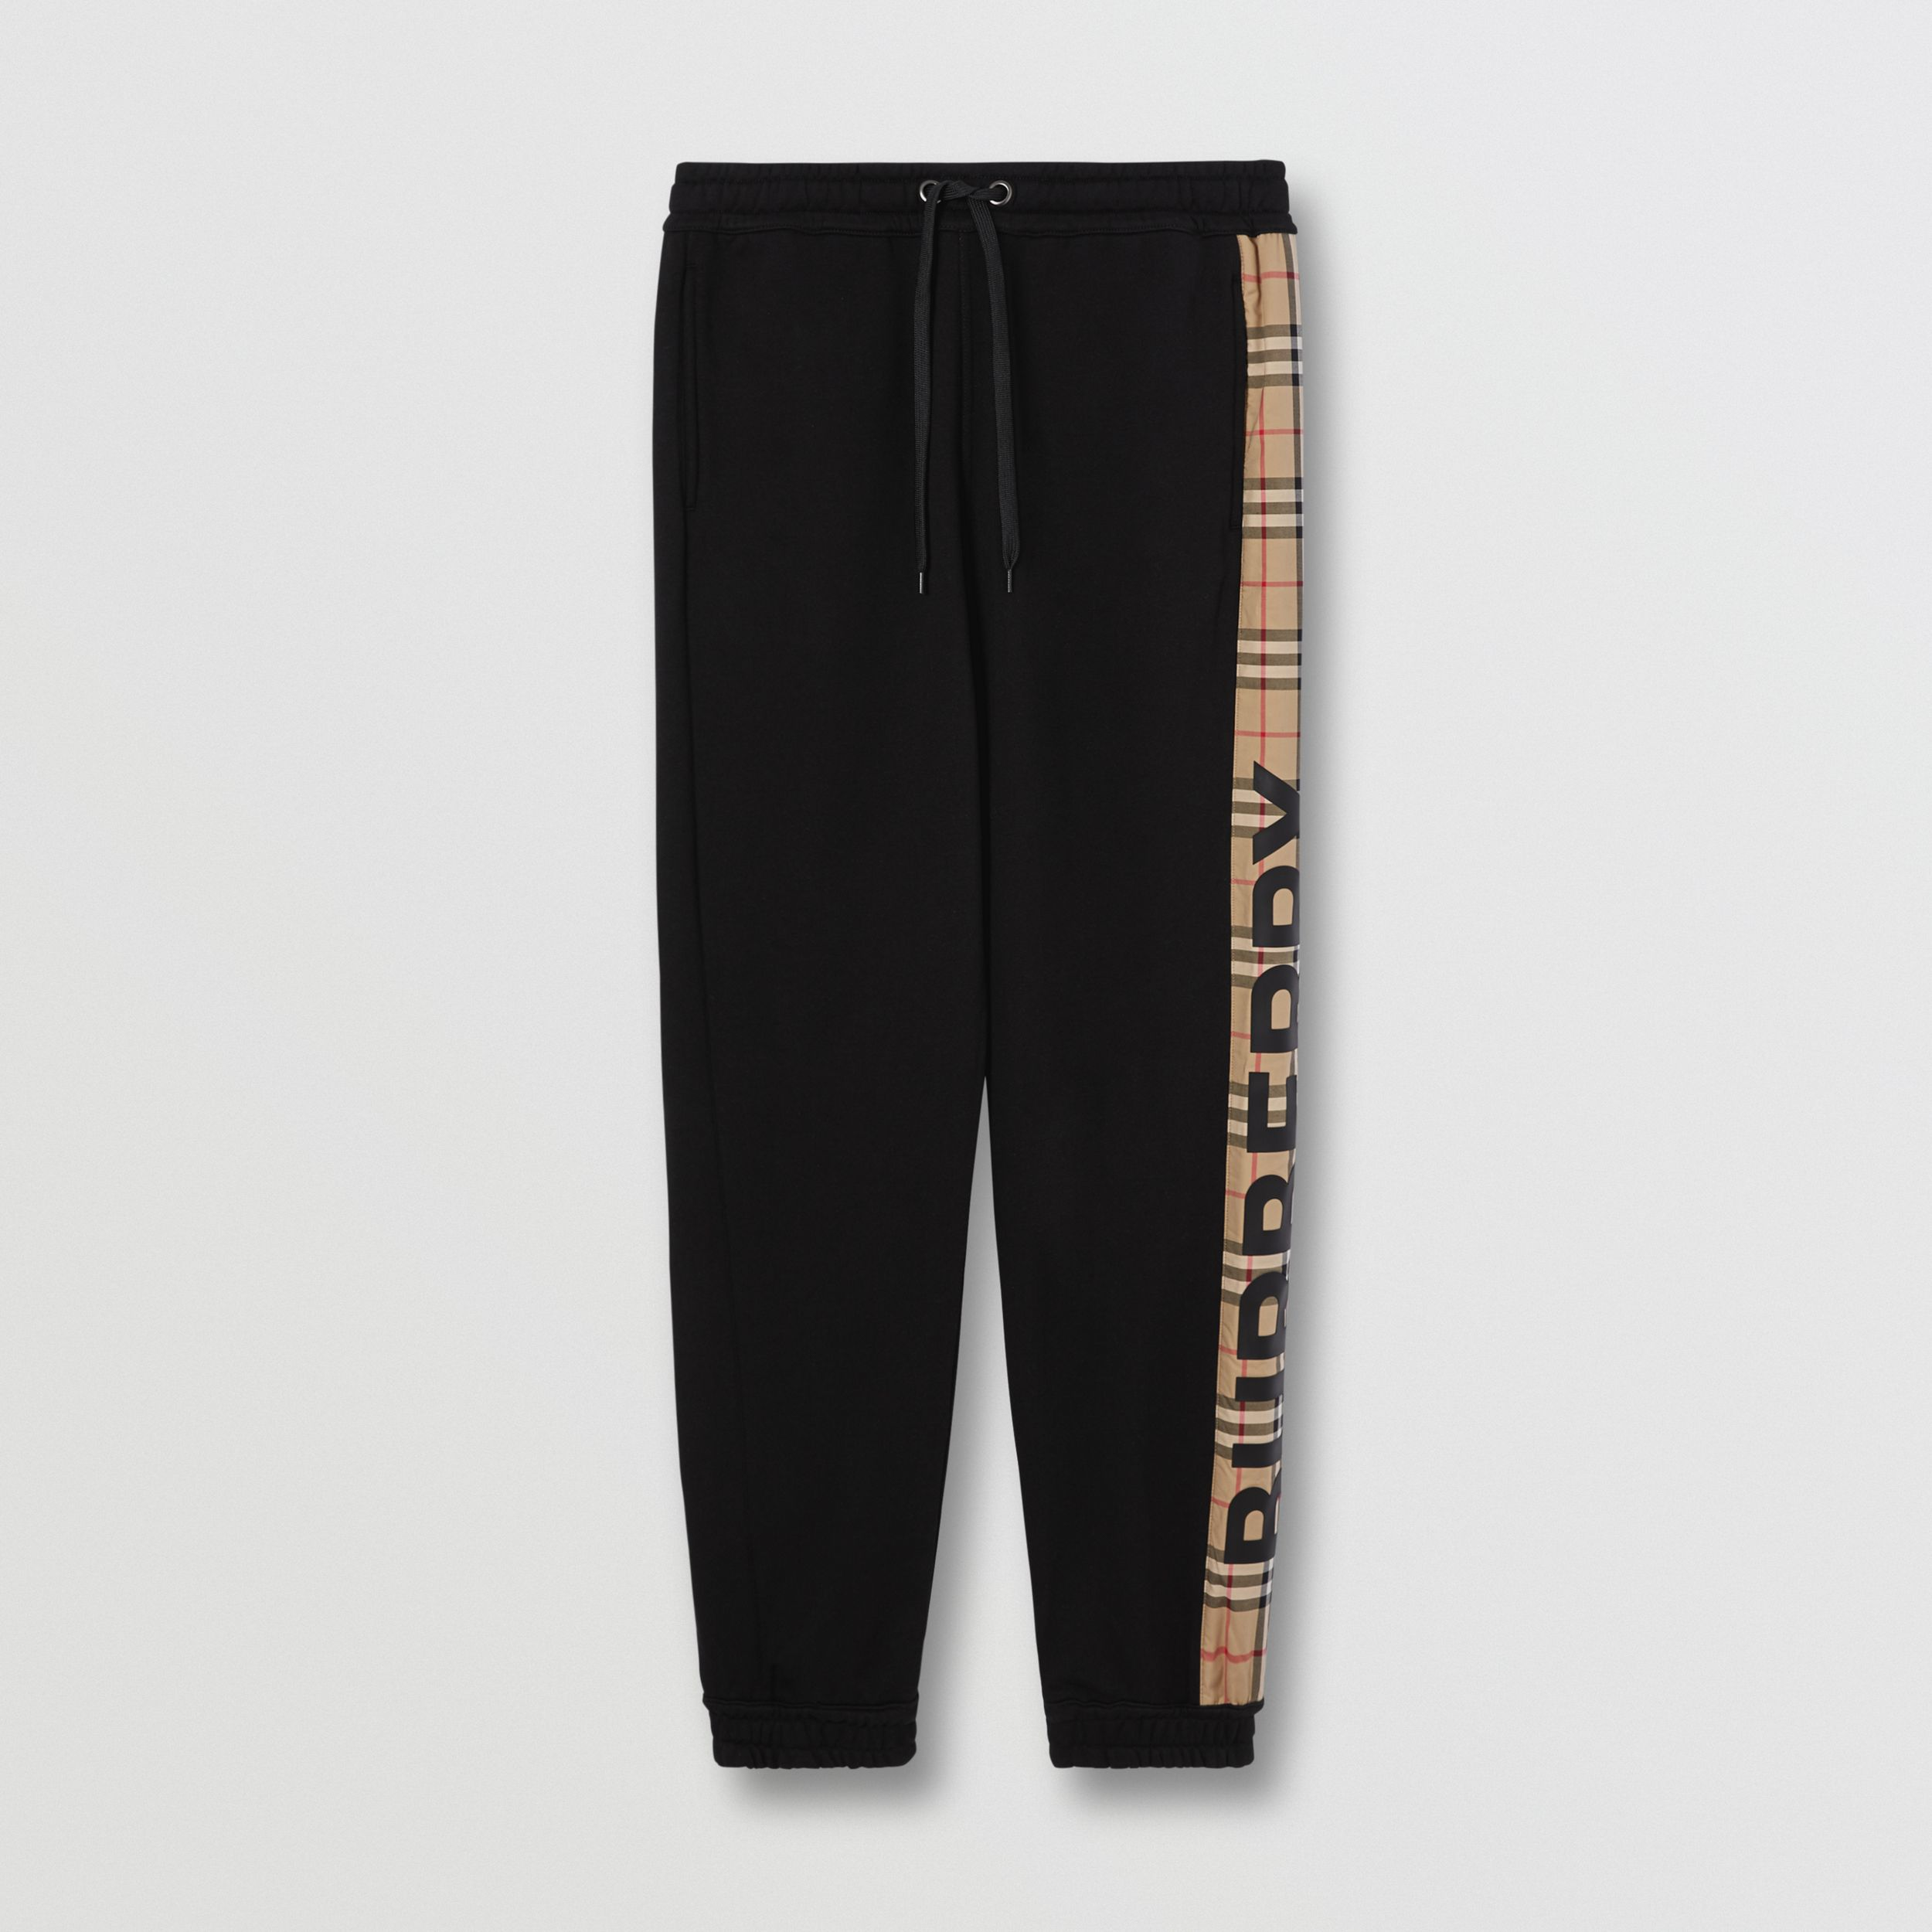 Logo Print Check Panel Cotton Jogging Pants in Black - Men | Burberry - 4